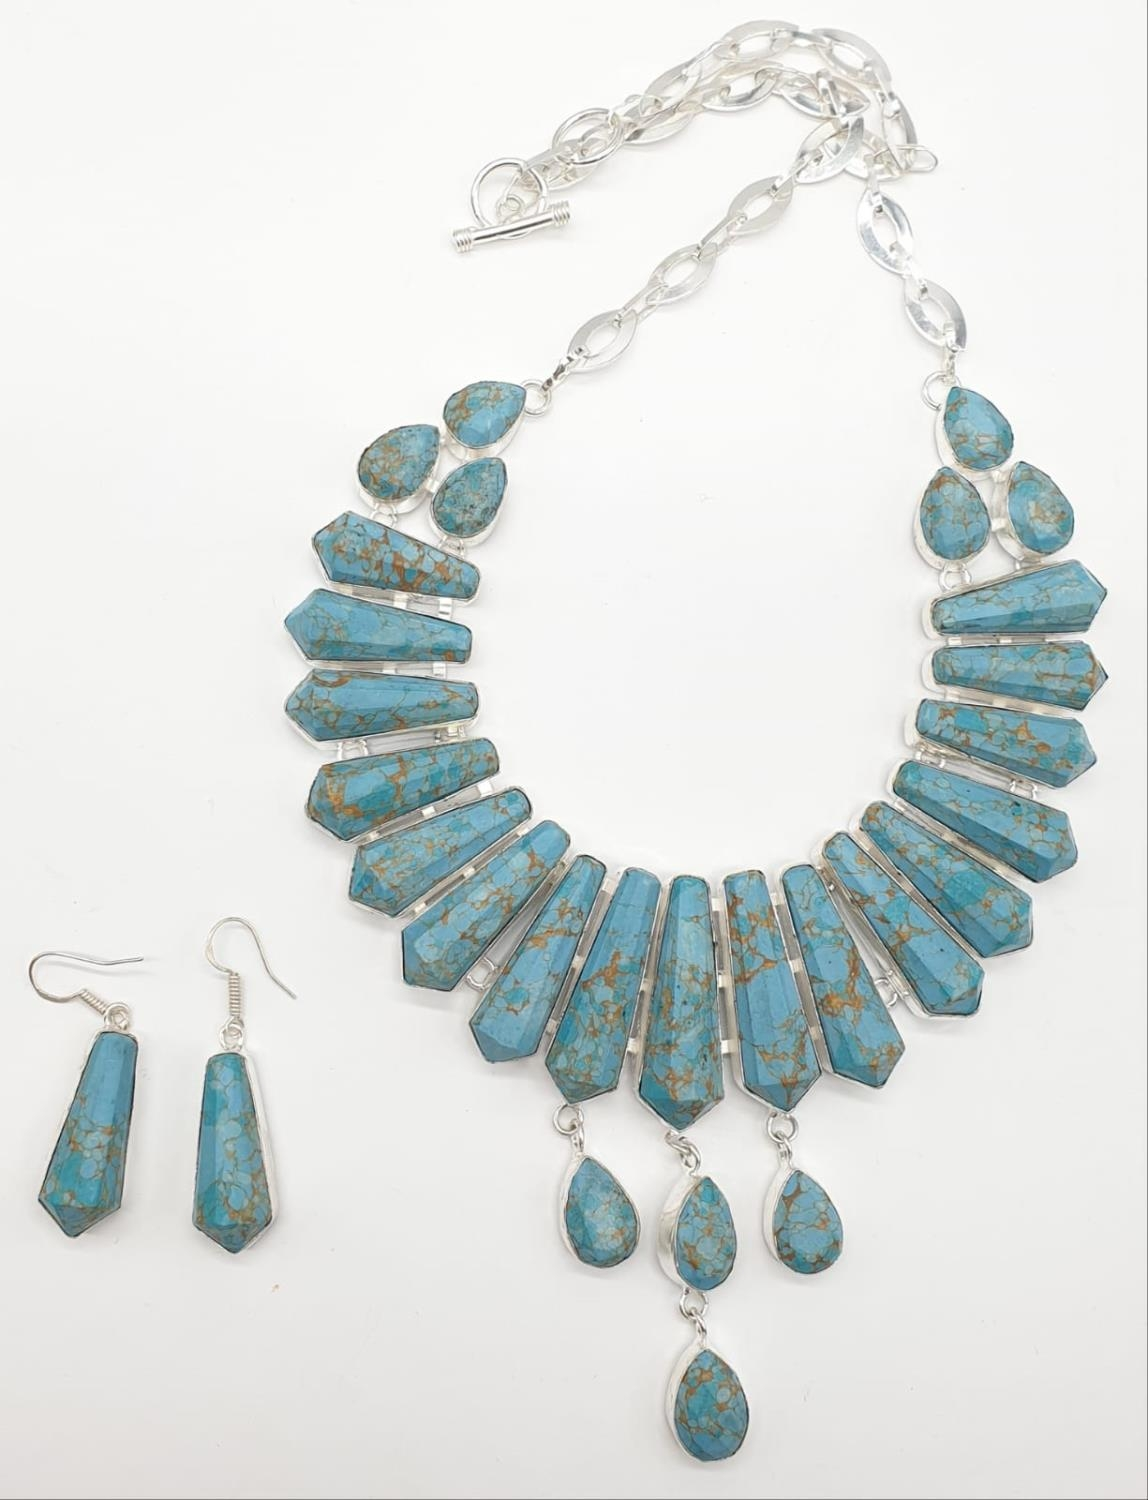 A Pharaonic style necklace and earrings set with light brown-gold veined turquoise obelisks and - Image 2 of 24